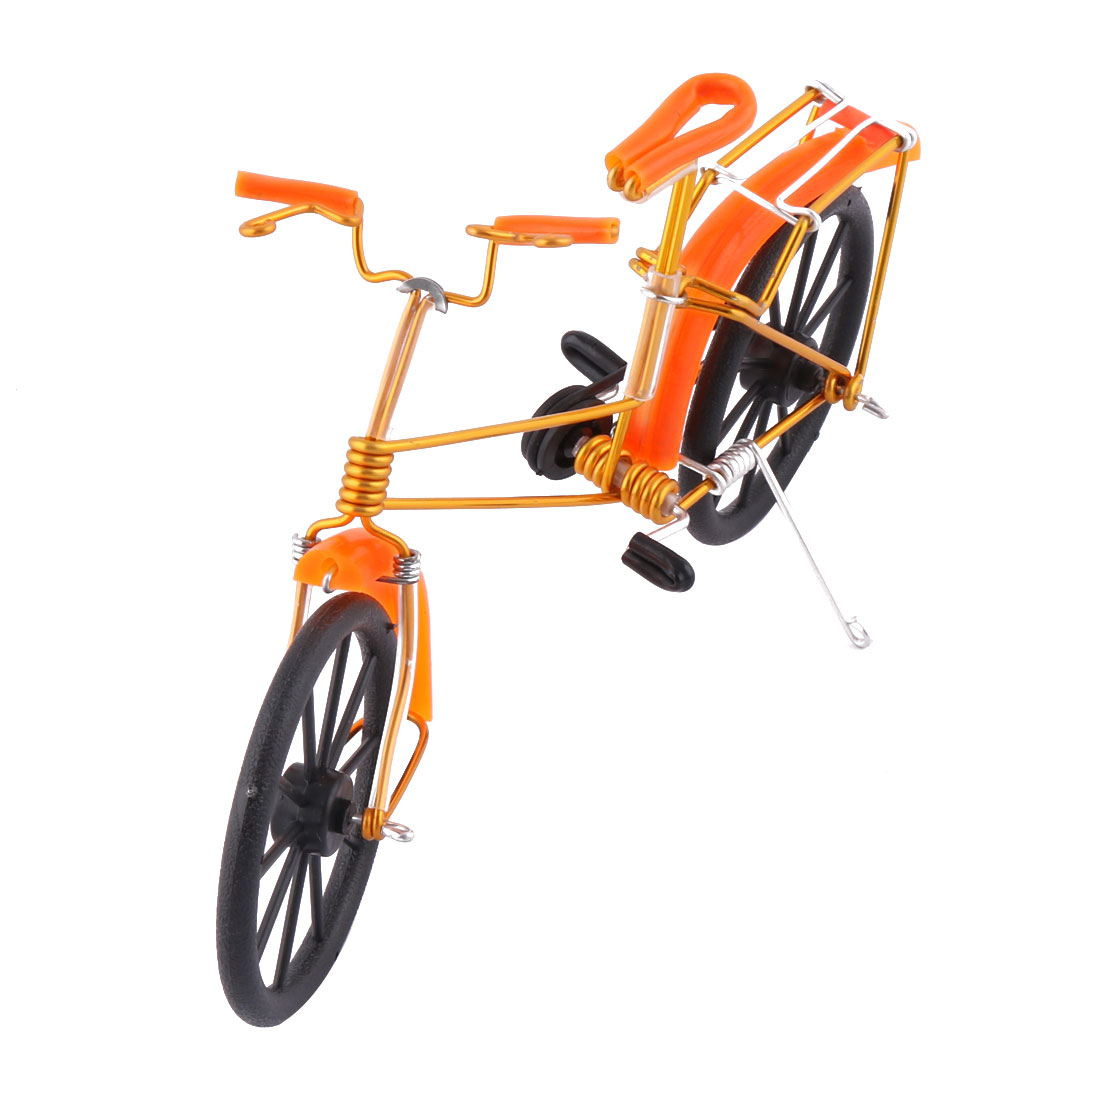 Aluminium Alloy Vintage Style Table Decor Handmade Toy Gift Bicycle Model Orange